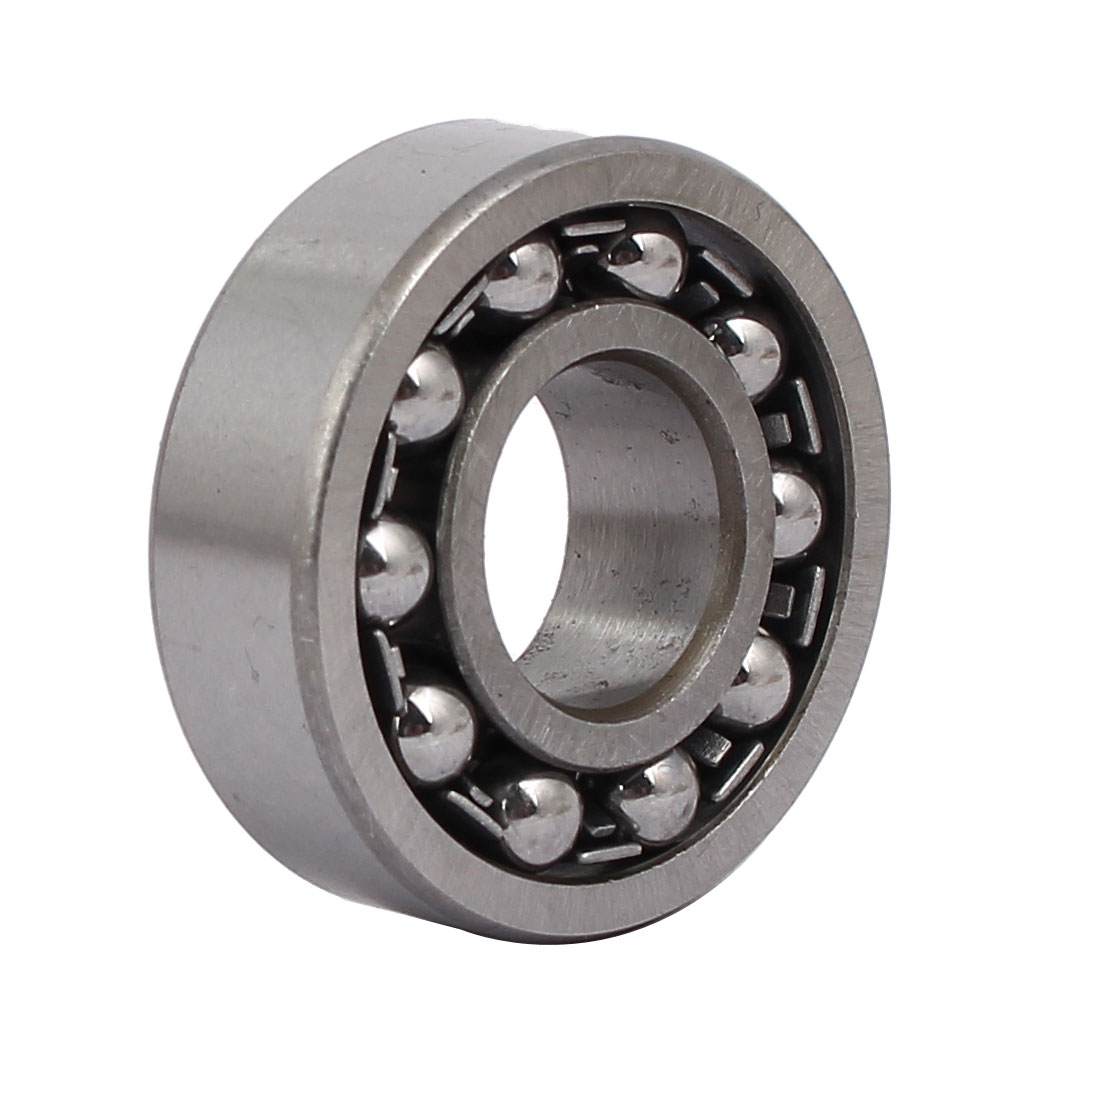 35mmx15mmx11mm 1202 Double Row Self-Aligning Ball Bearing Silver Tone